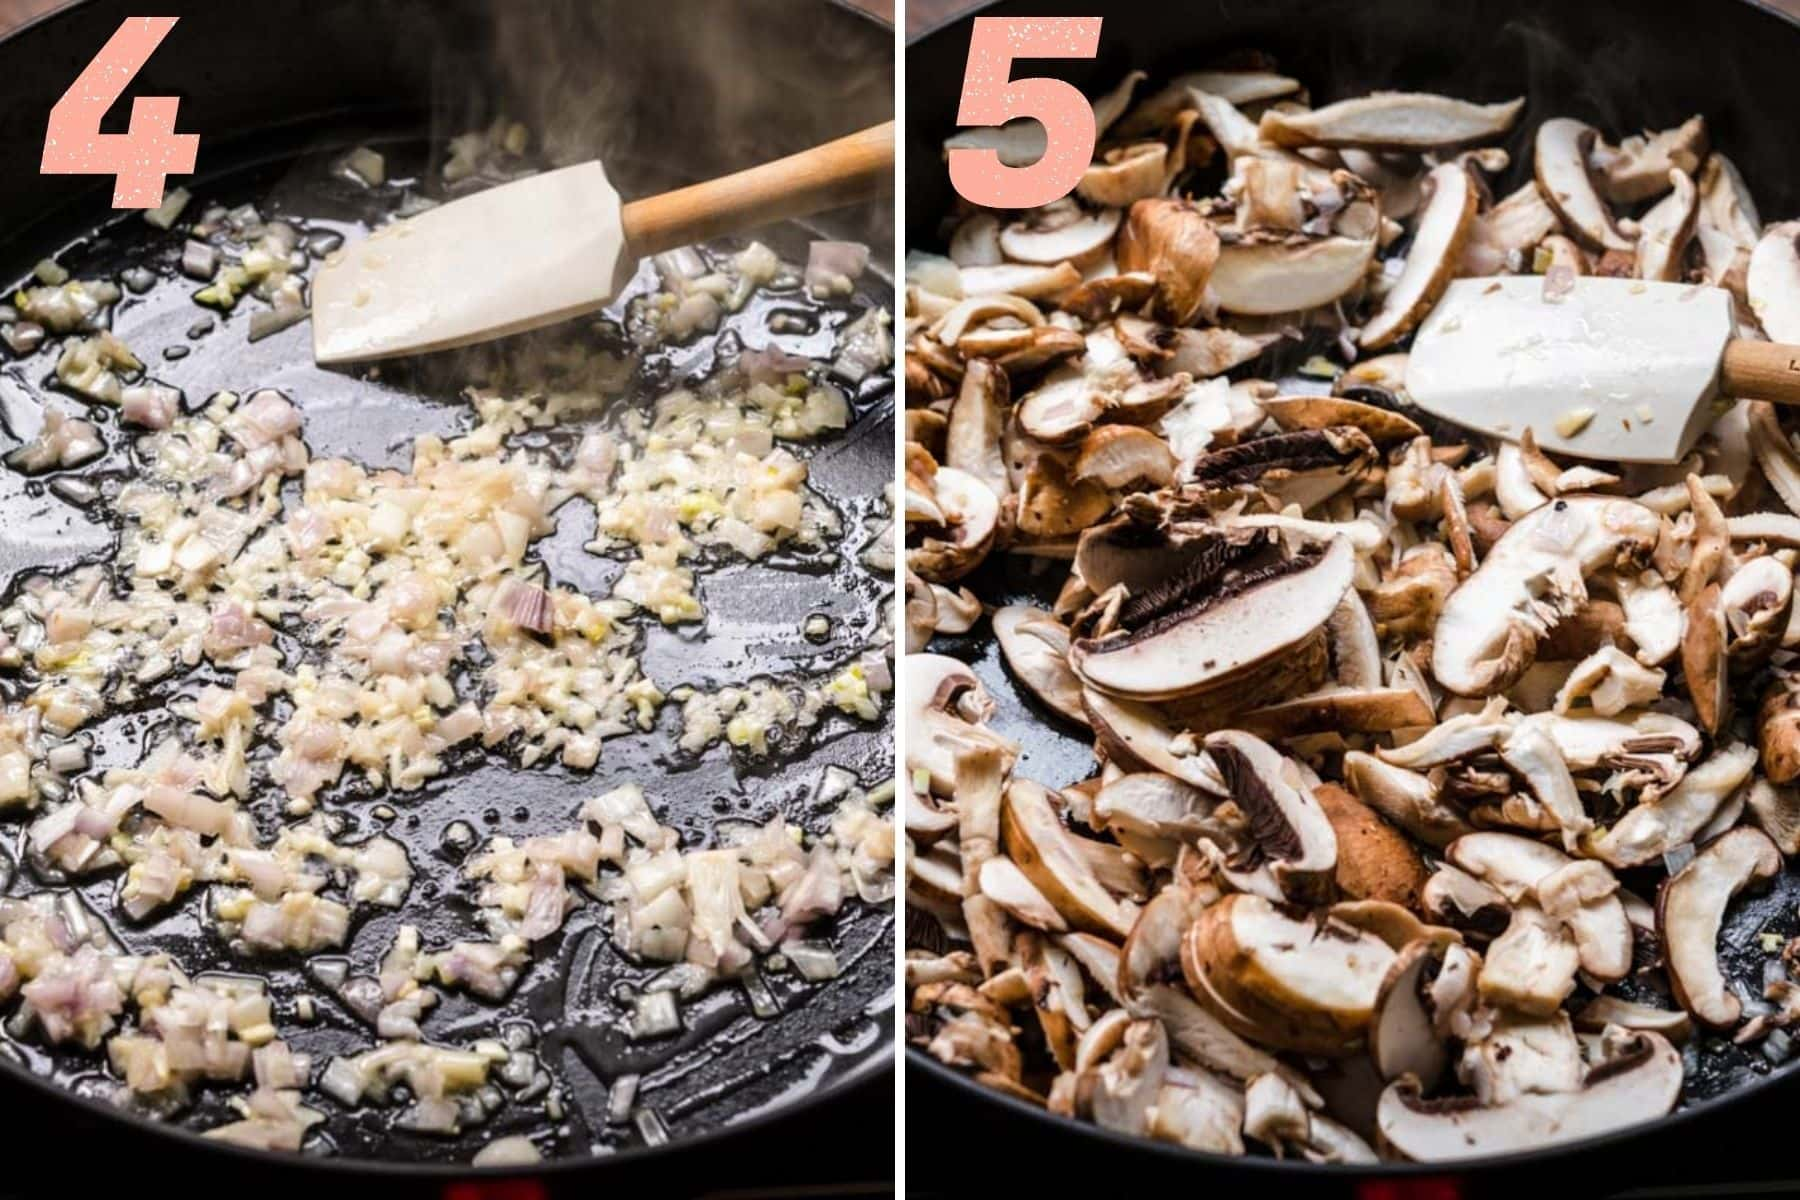 On the left: shallots and garlic cooking in a pan. On the right: mushrooms cooking in a pan.